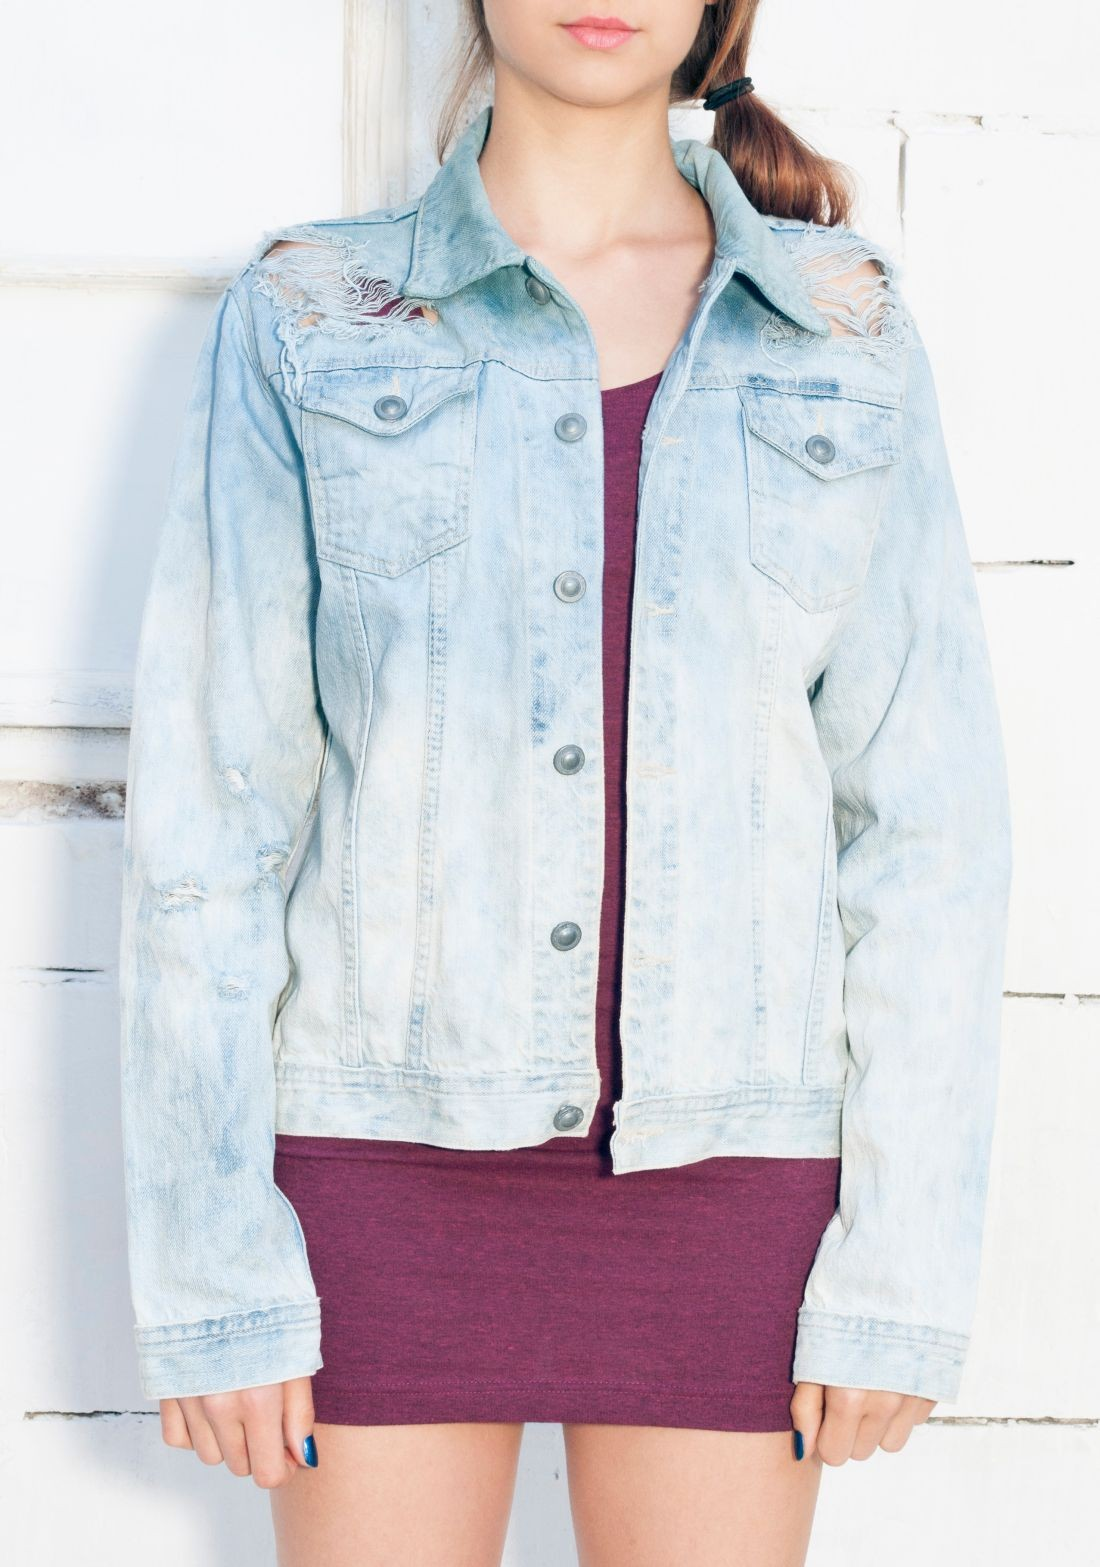 Ombre denim jacket - Pop Sick Vintage